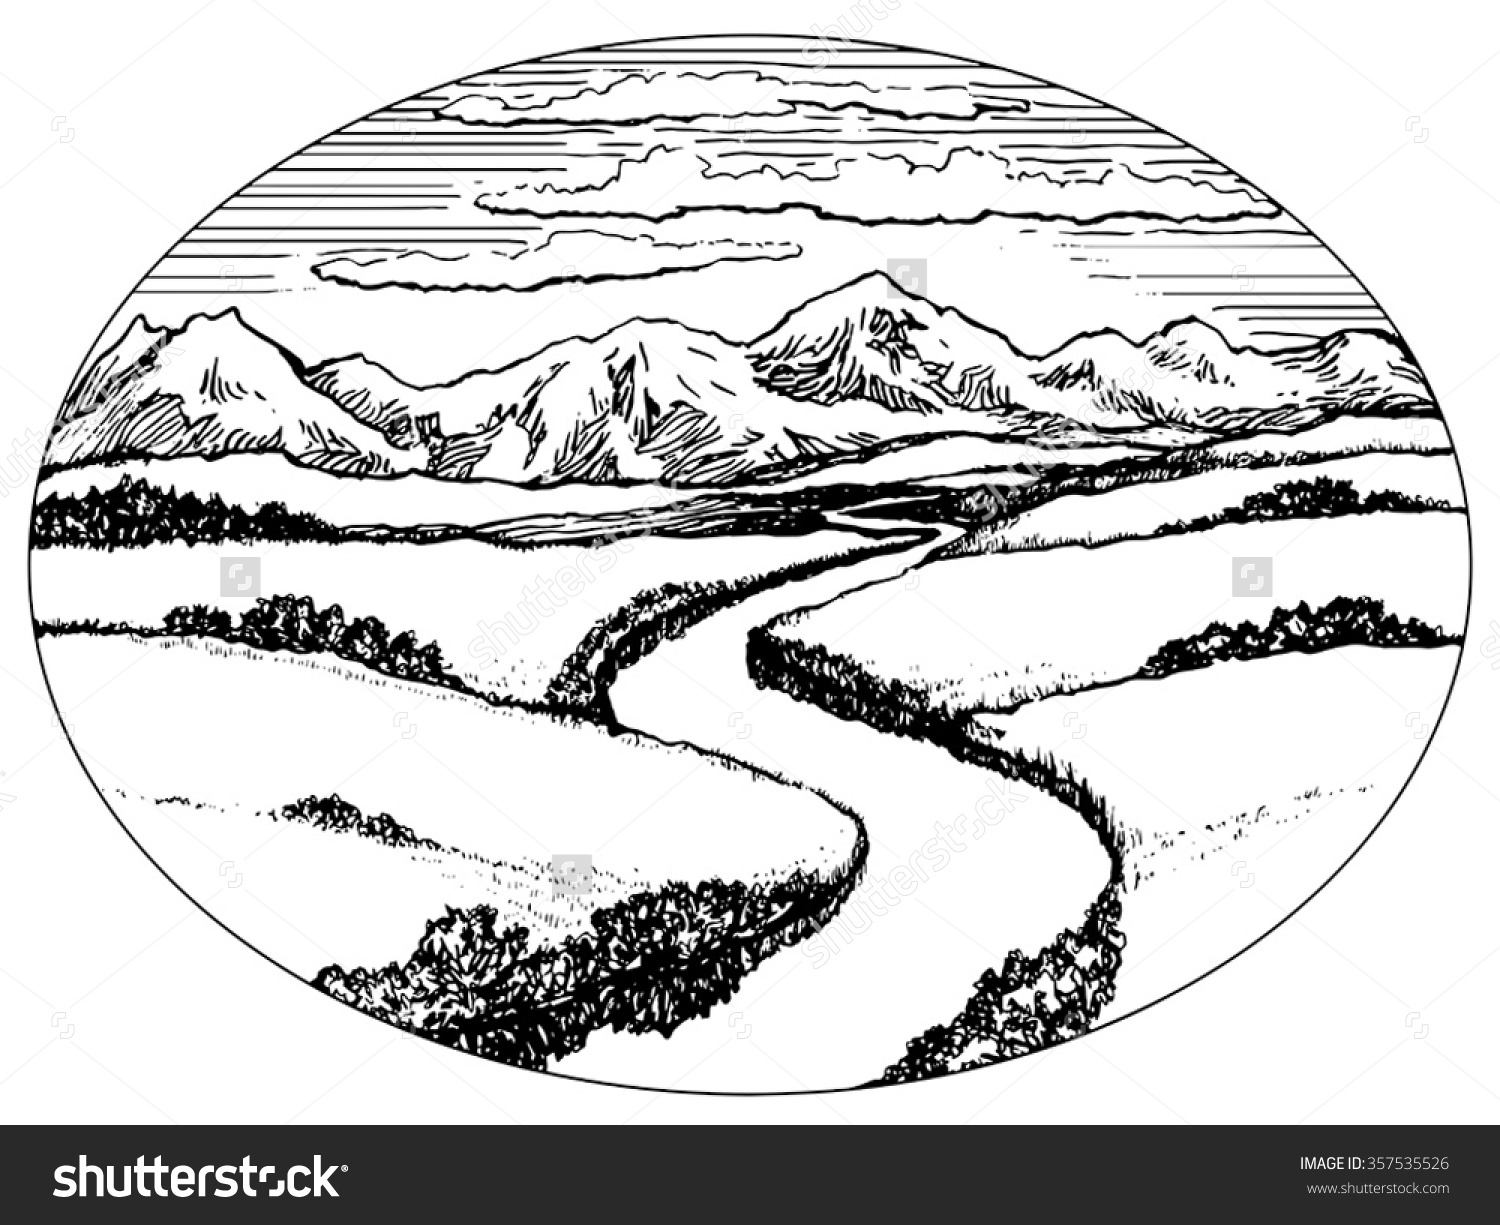 Black And White River Clipart.